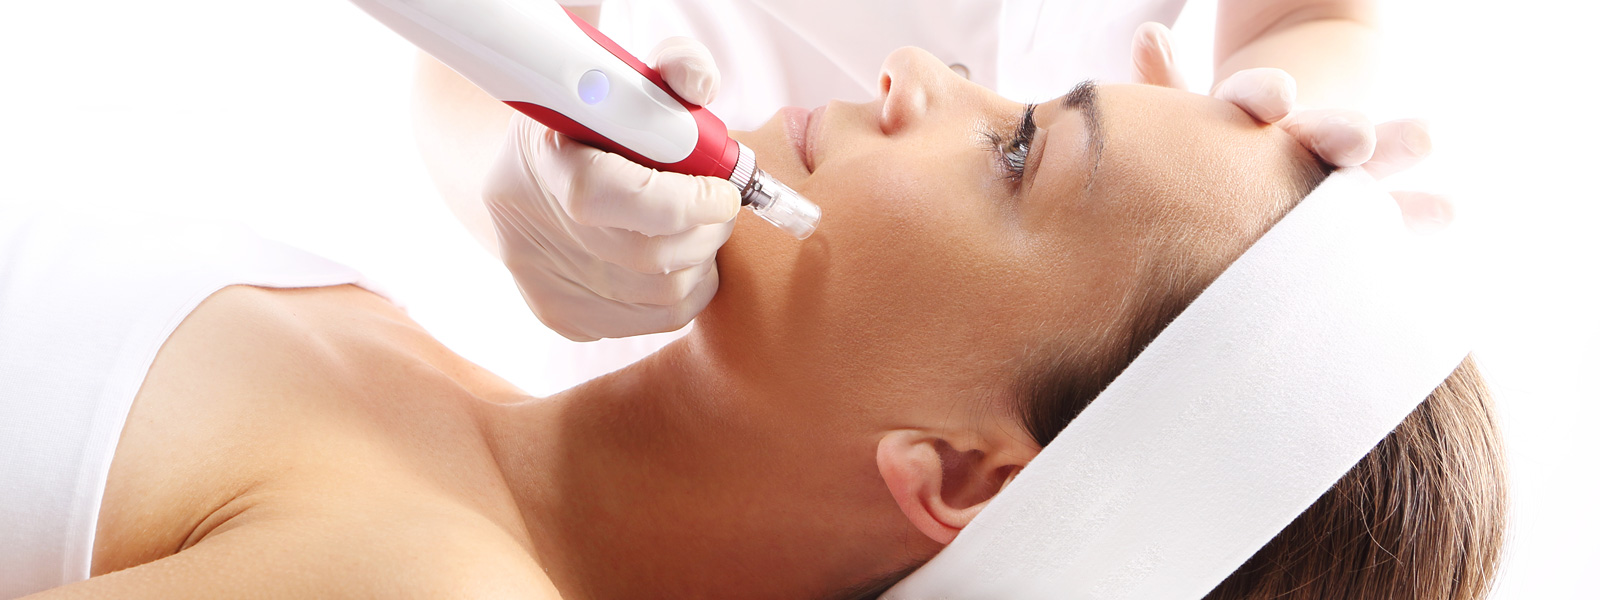 A Woman Having Microneedling Treatment